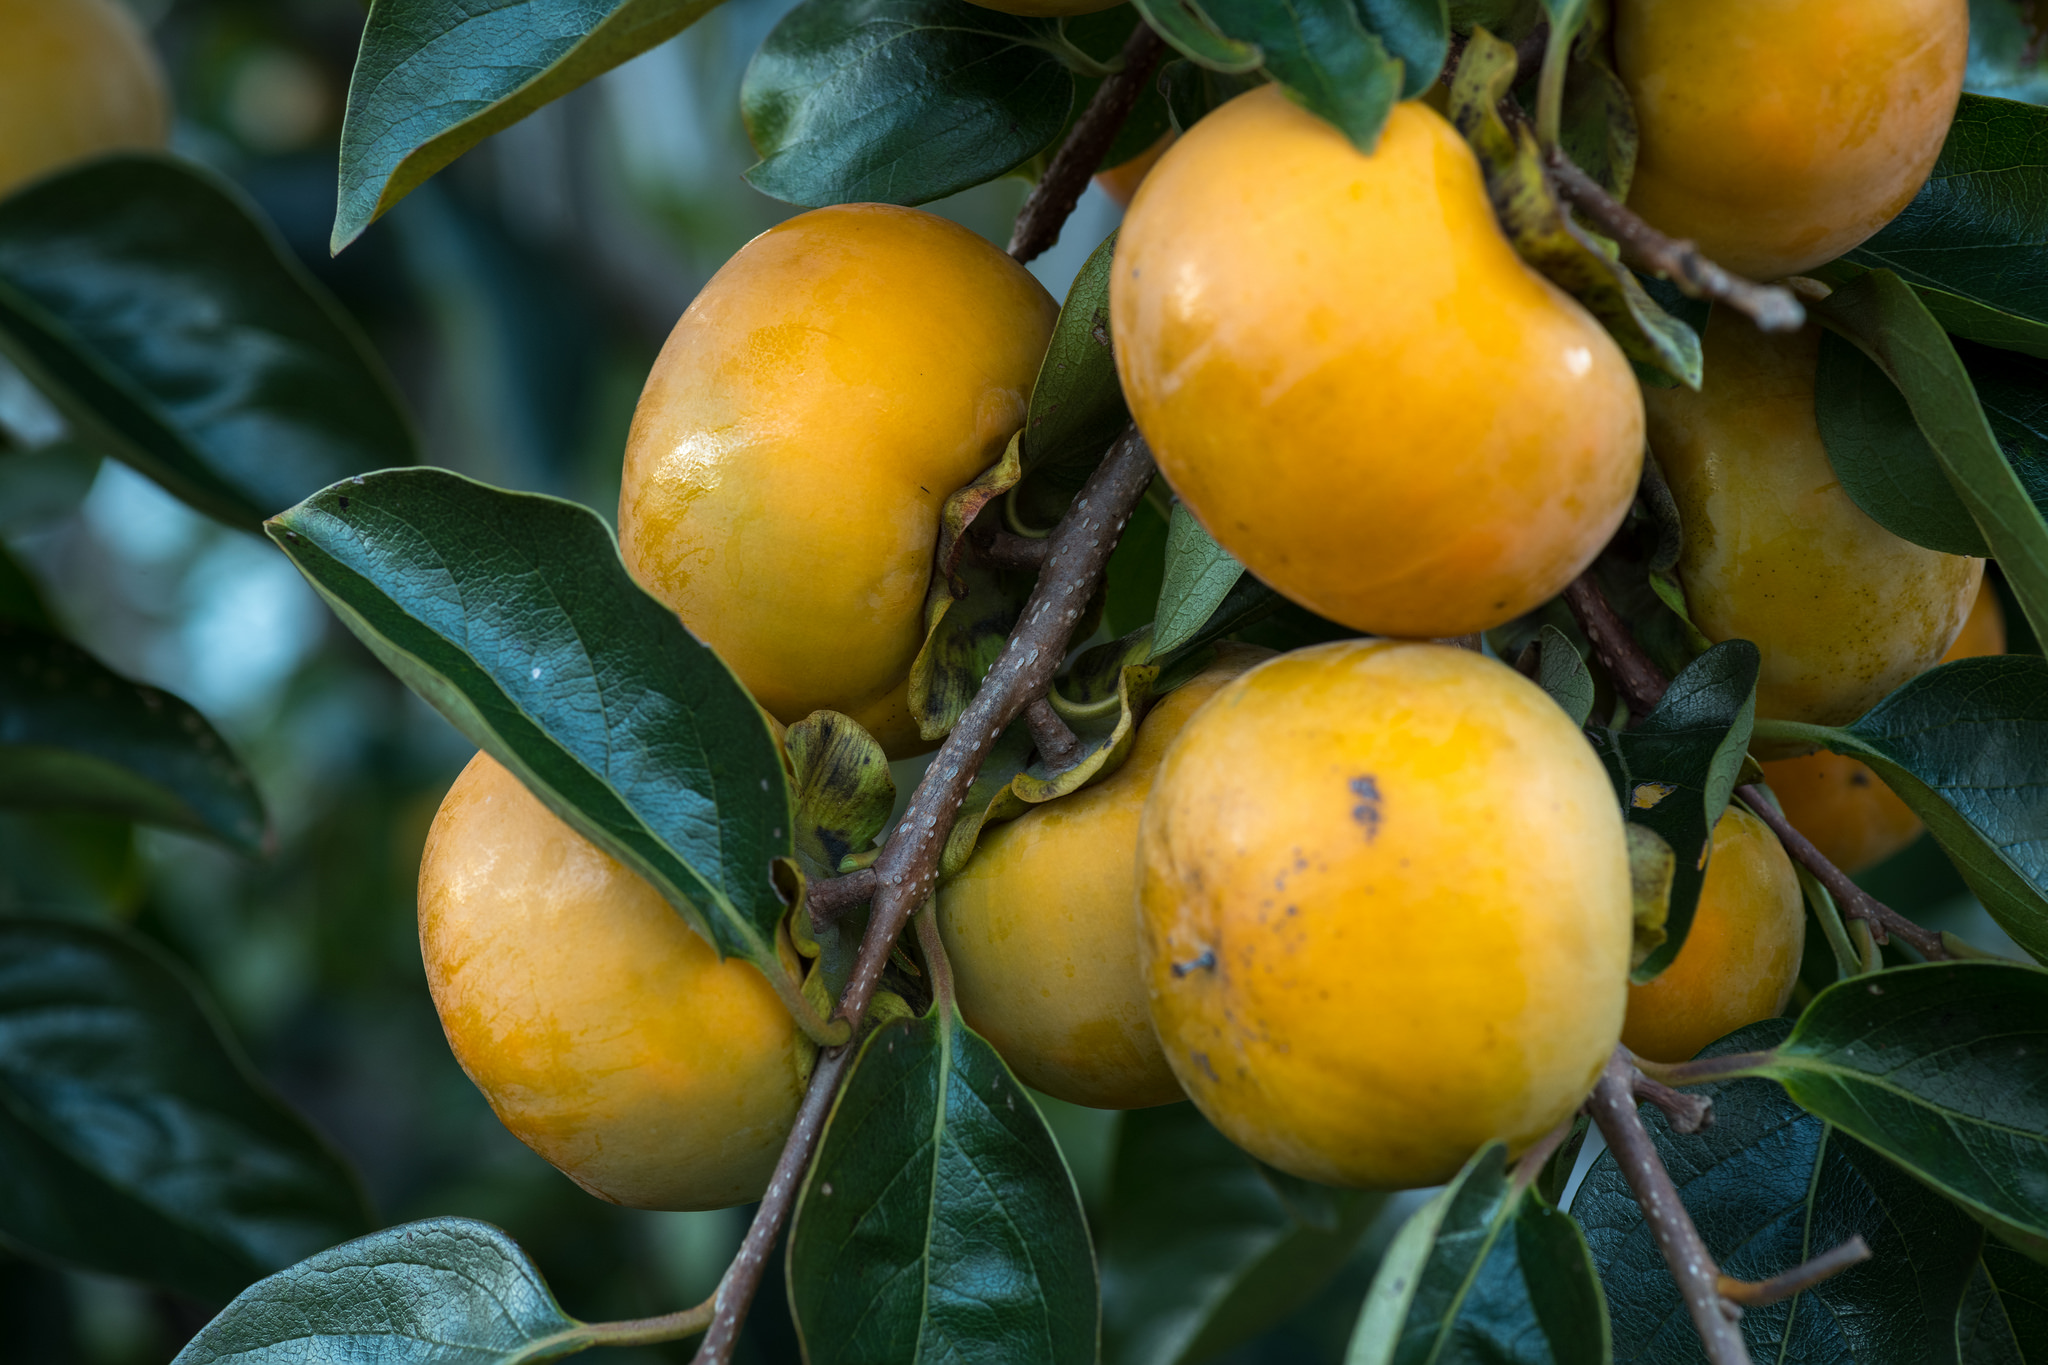 """""""Diospyros virginiana FS4 30 Oct 2018""""    by    Puddin Tain    is licensed under    CC BY 2.0"""